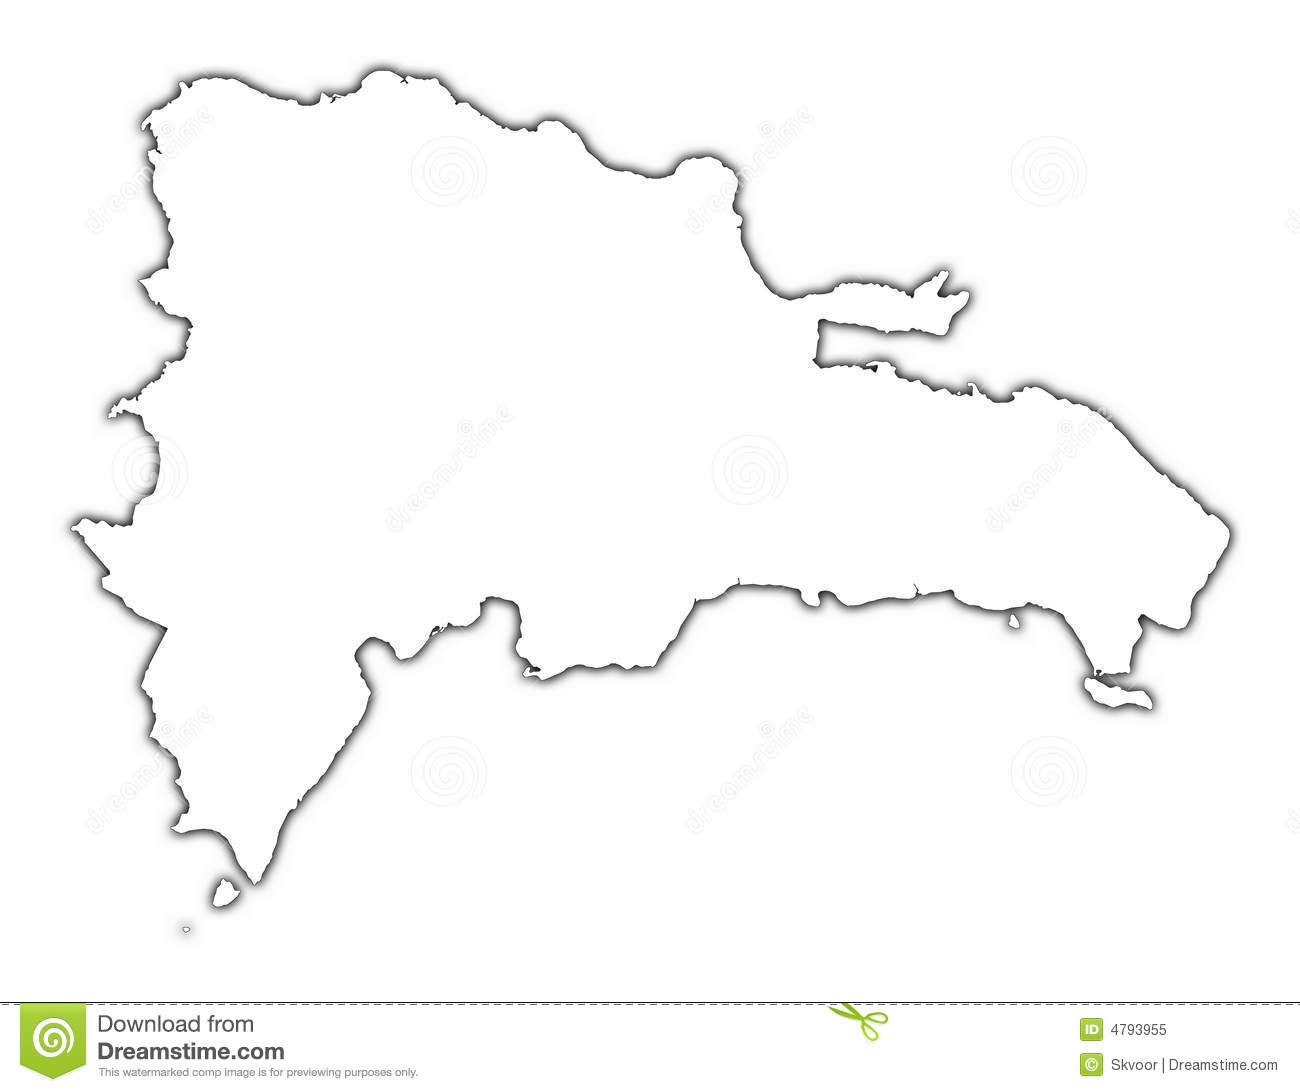 Dominican Republic Outline Map Royalty Free Stock Photo - Image ...